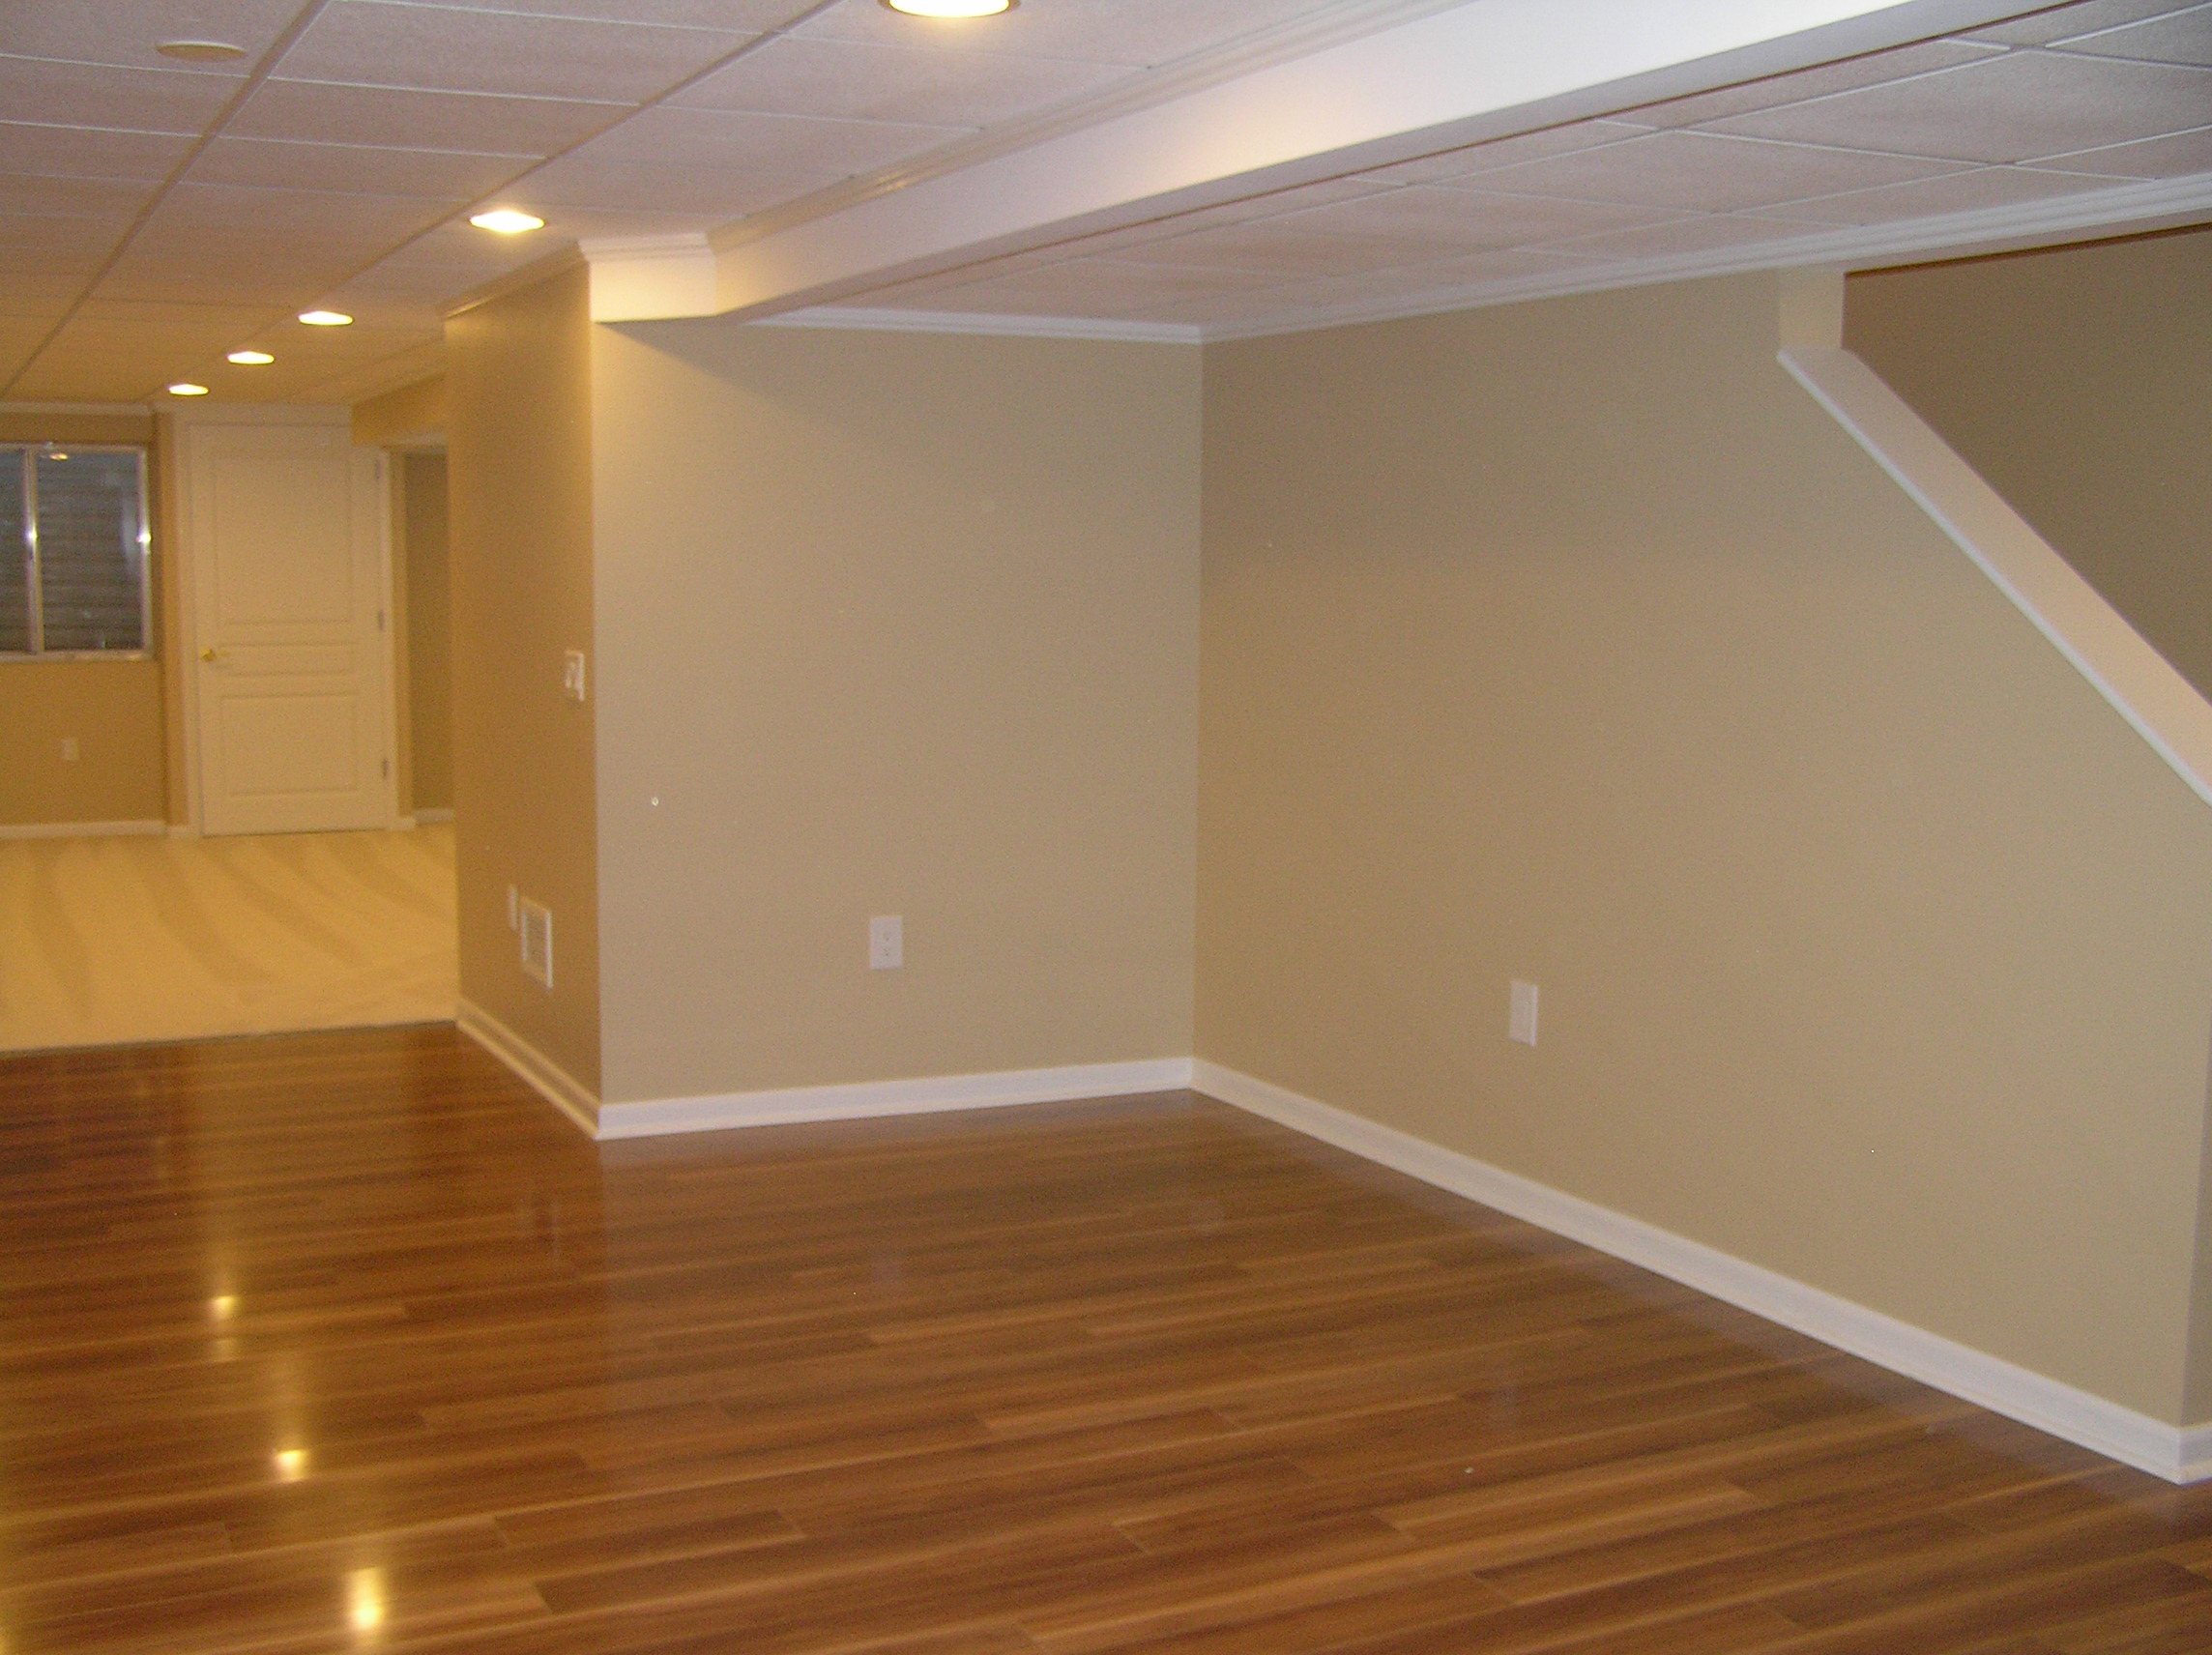 Basement Finishing In Naperville Aurora Joliet Illinois Basement Finishing Company Il Total Basement Finishing